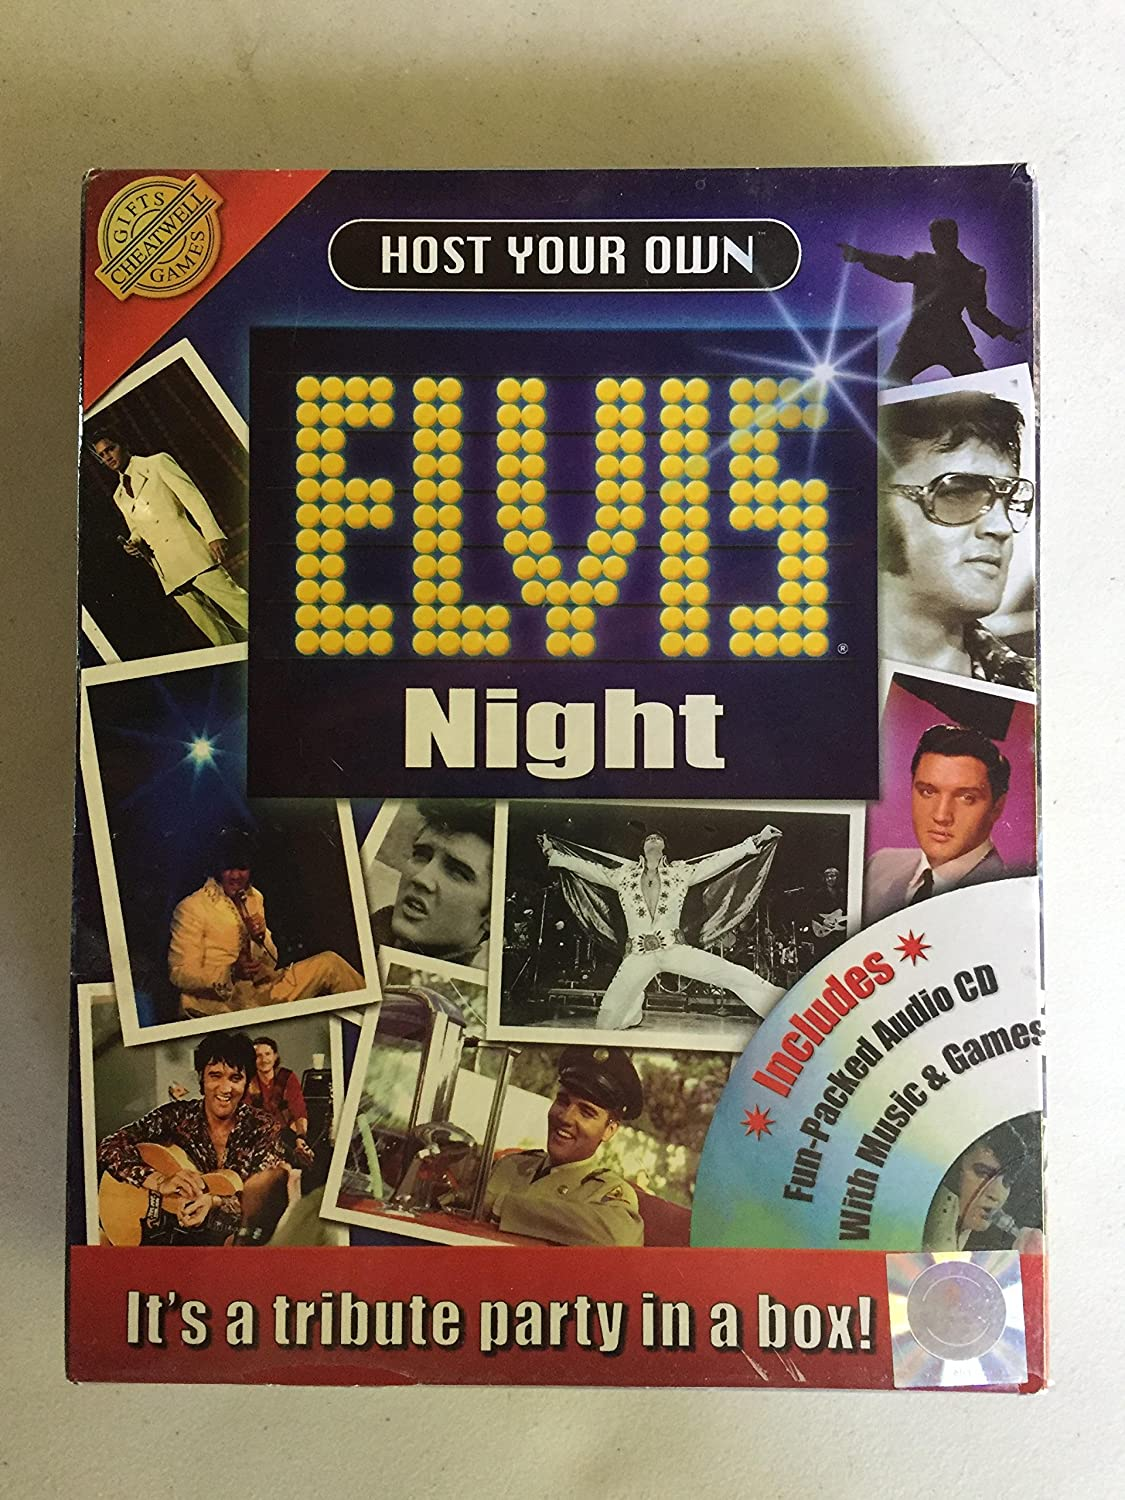 Host your own elvis night tribute party kit by Unknown (0100-01-01) B000PRSUVE | Produktqualität